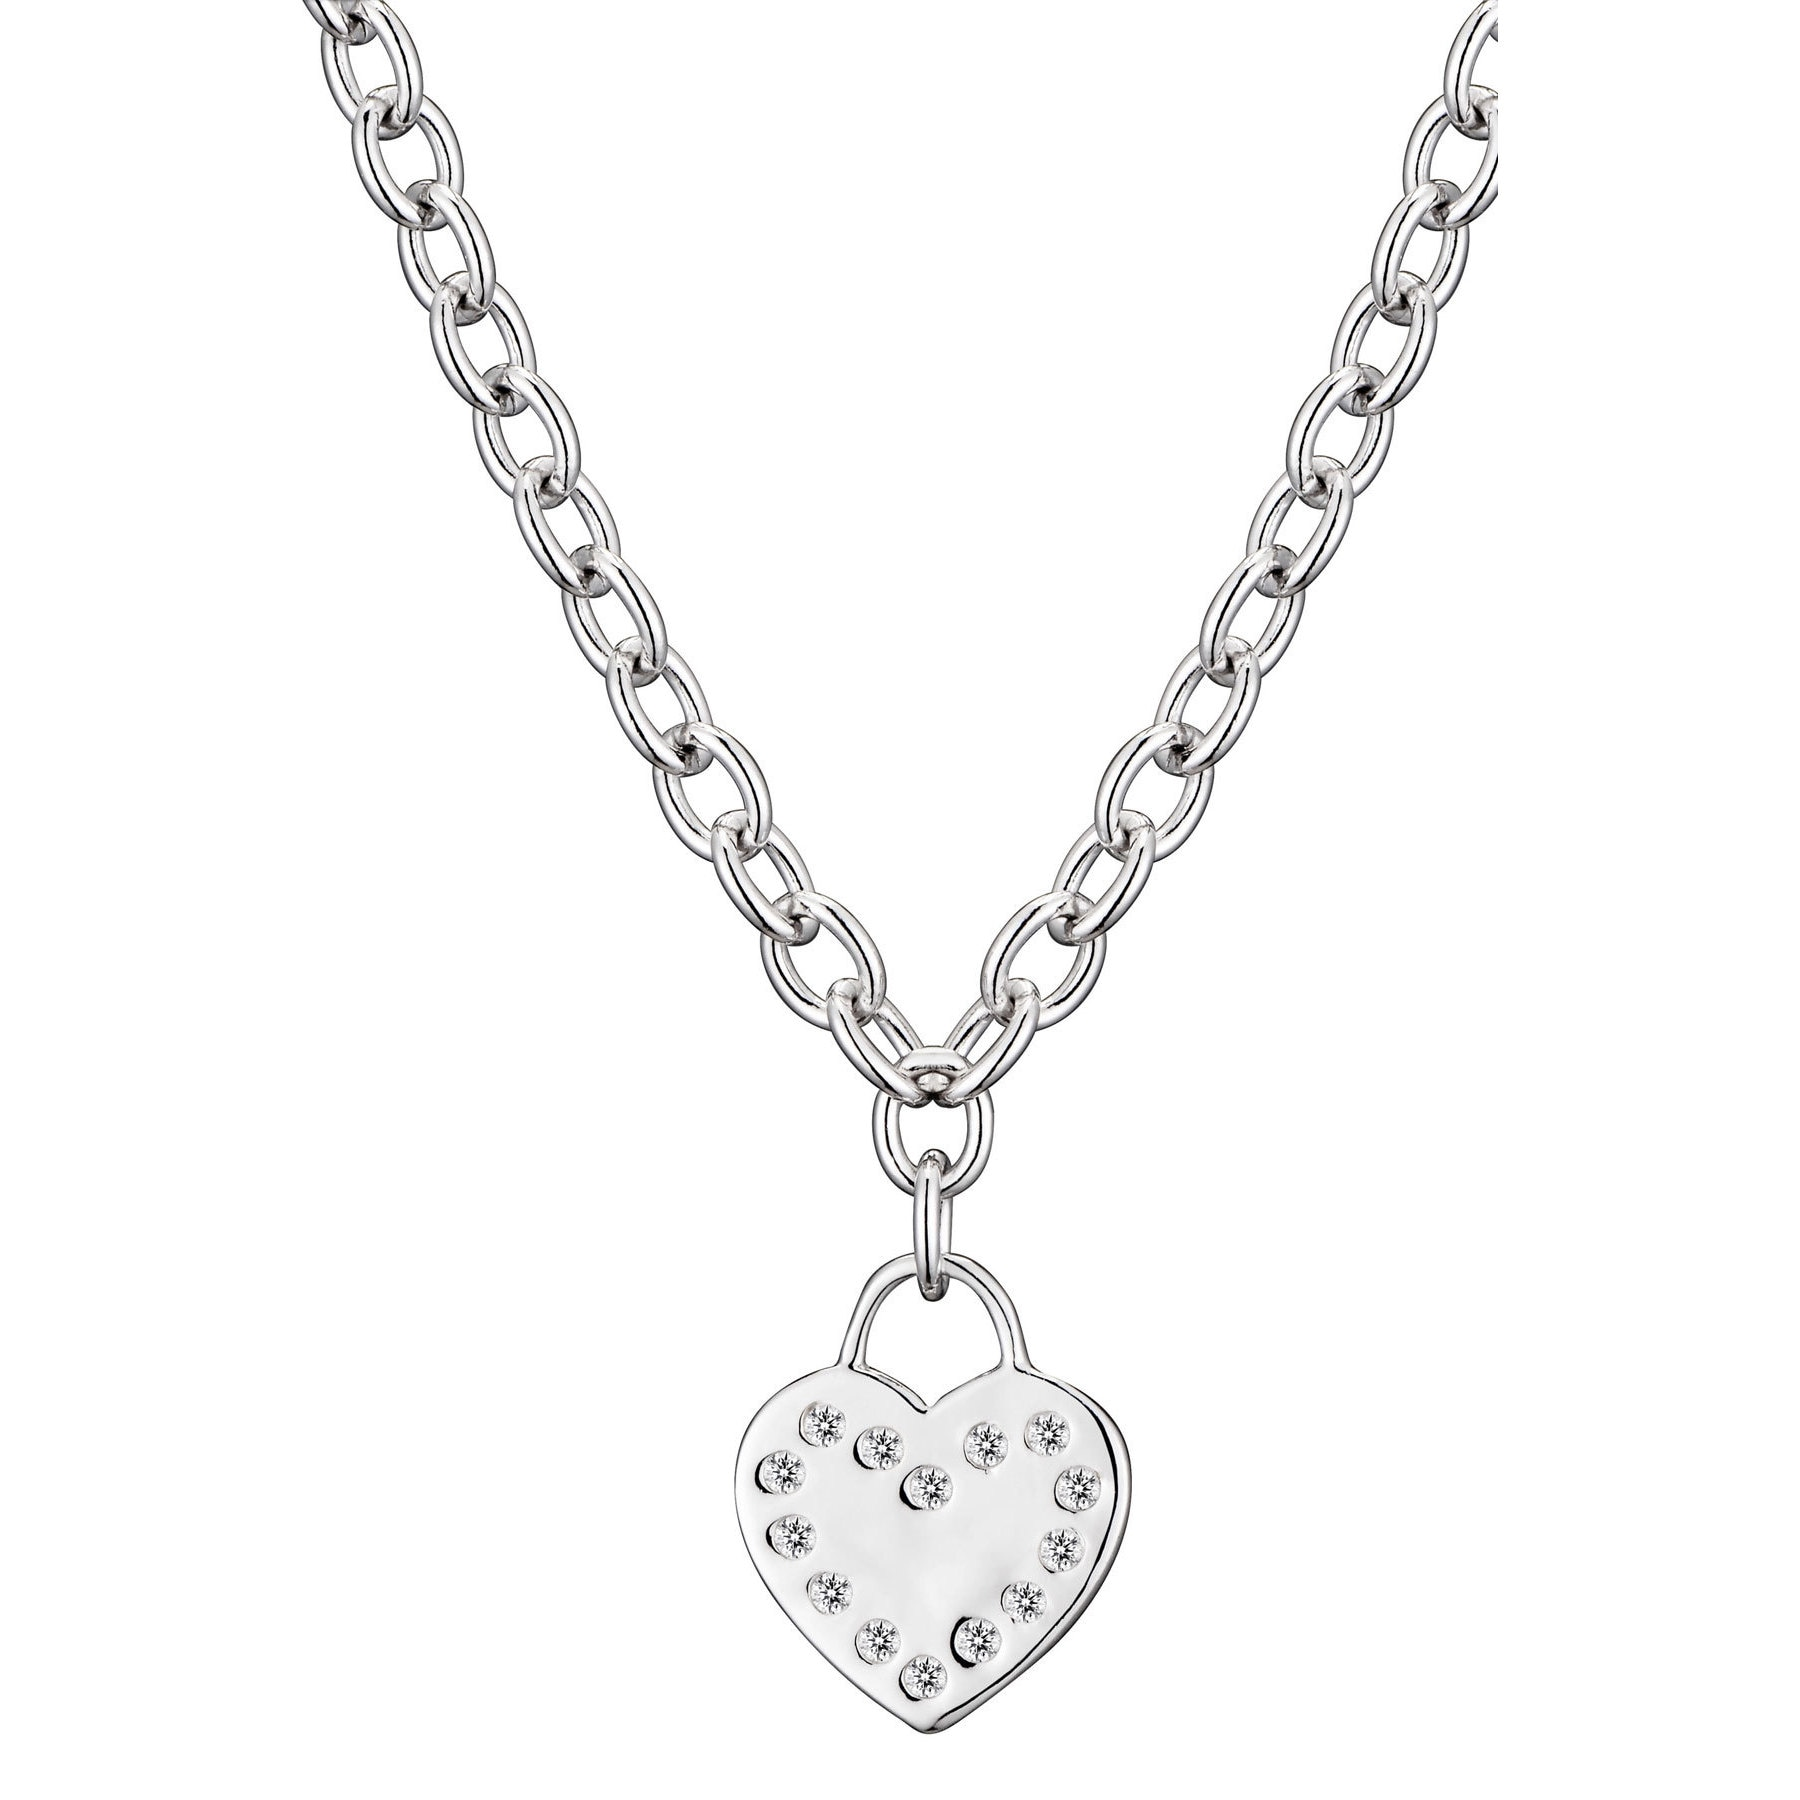 flat stainless pendant item necklace steel catalogitem heart